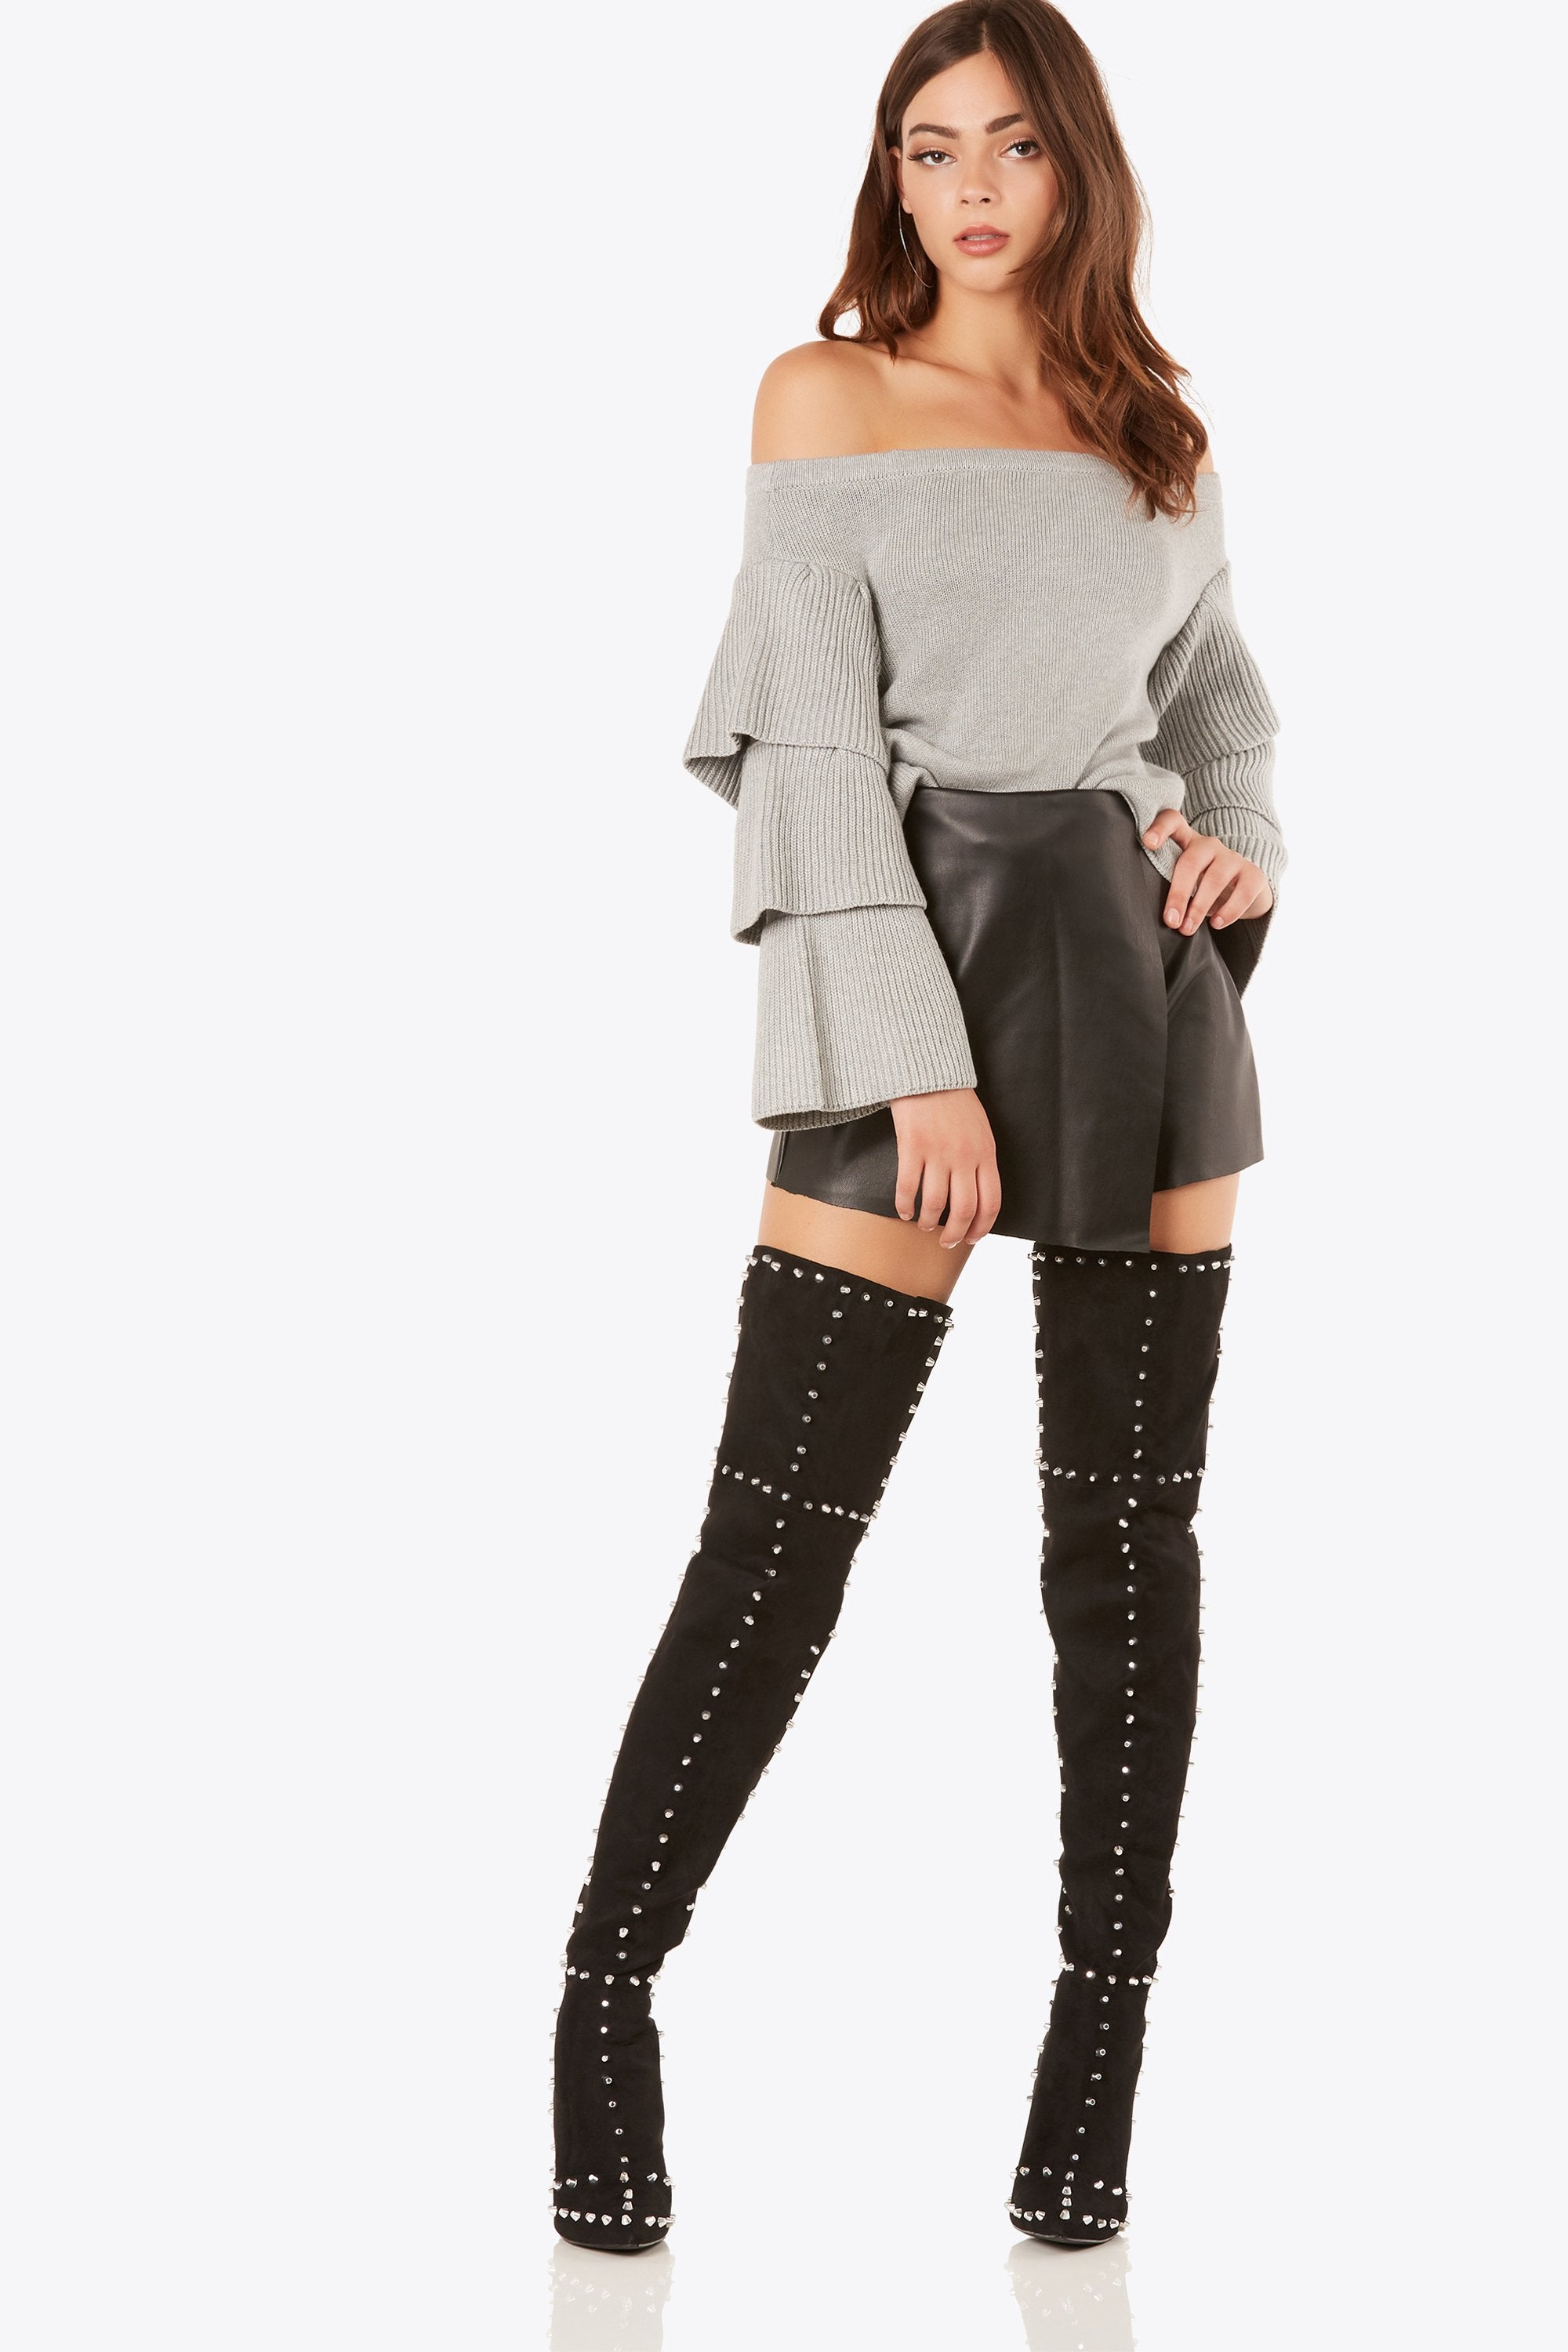 Stud Muffin Thigh High Boots